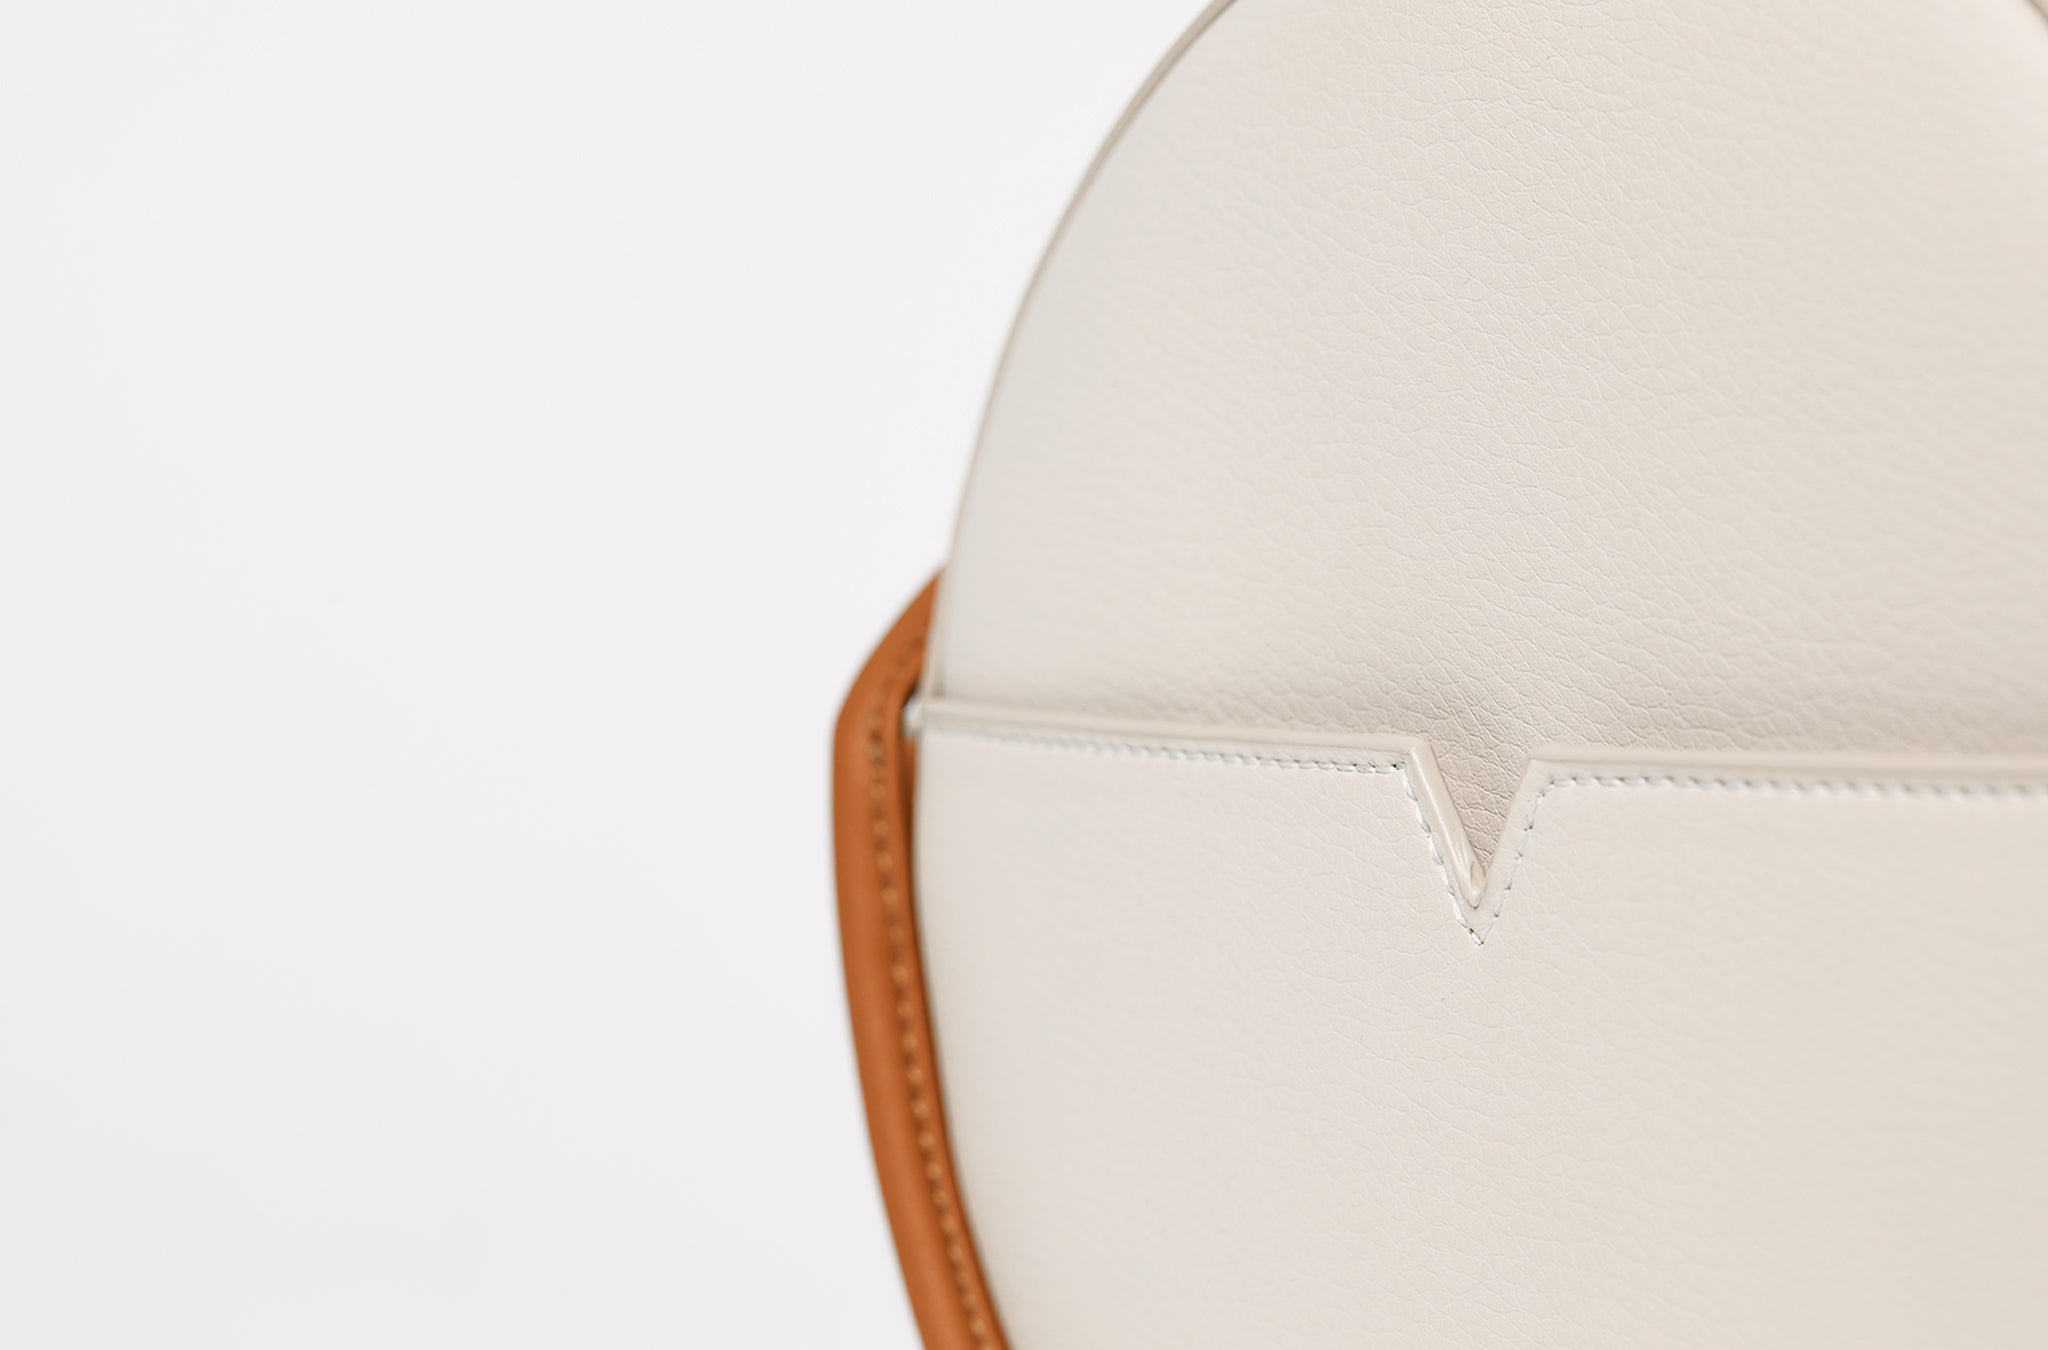 The Circle Crossbody in Banbū Leather in Oat